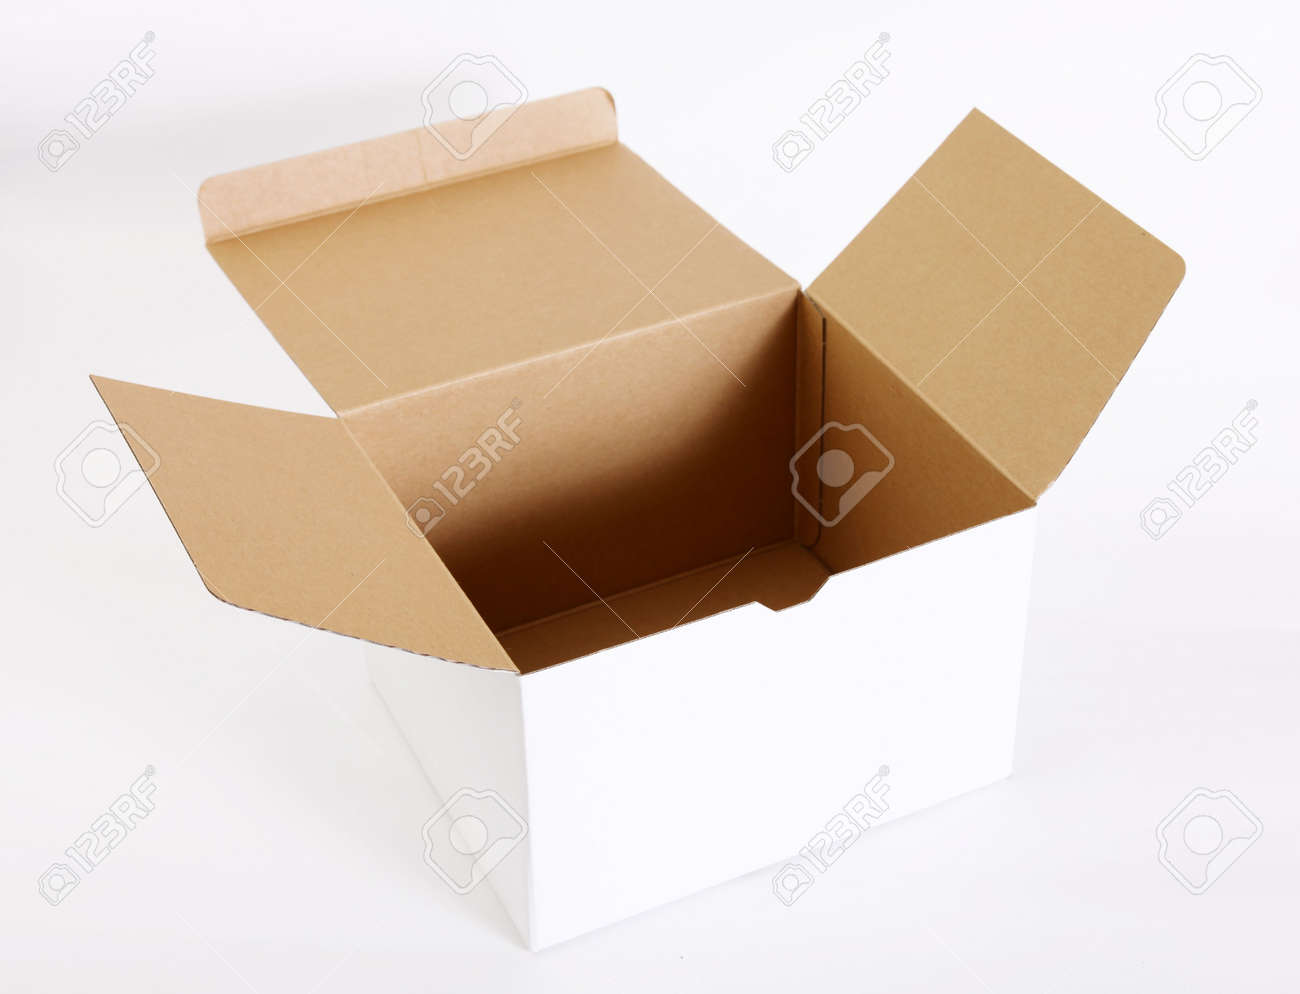 Open cardboard box on white background. Empty image Stock Photo - 6231336